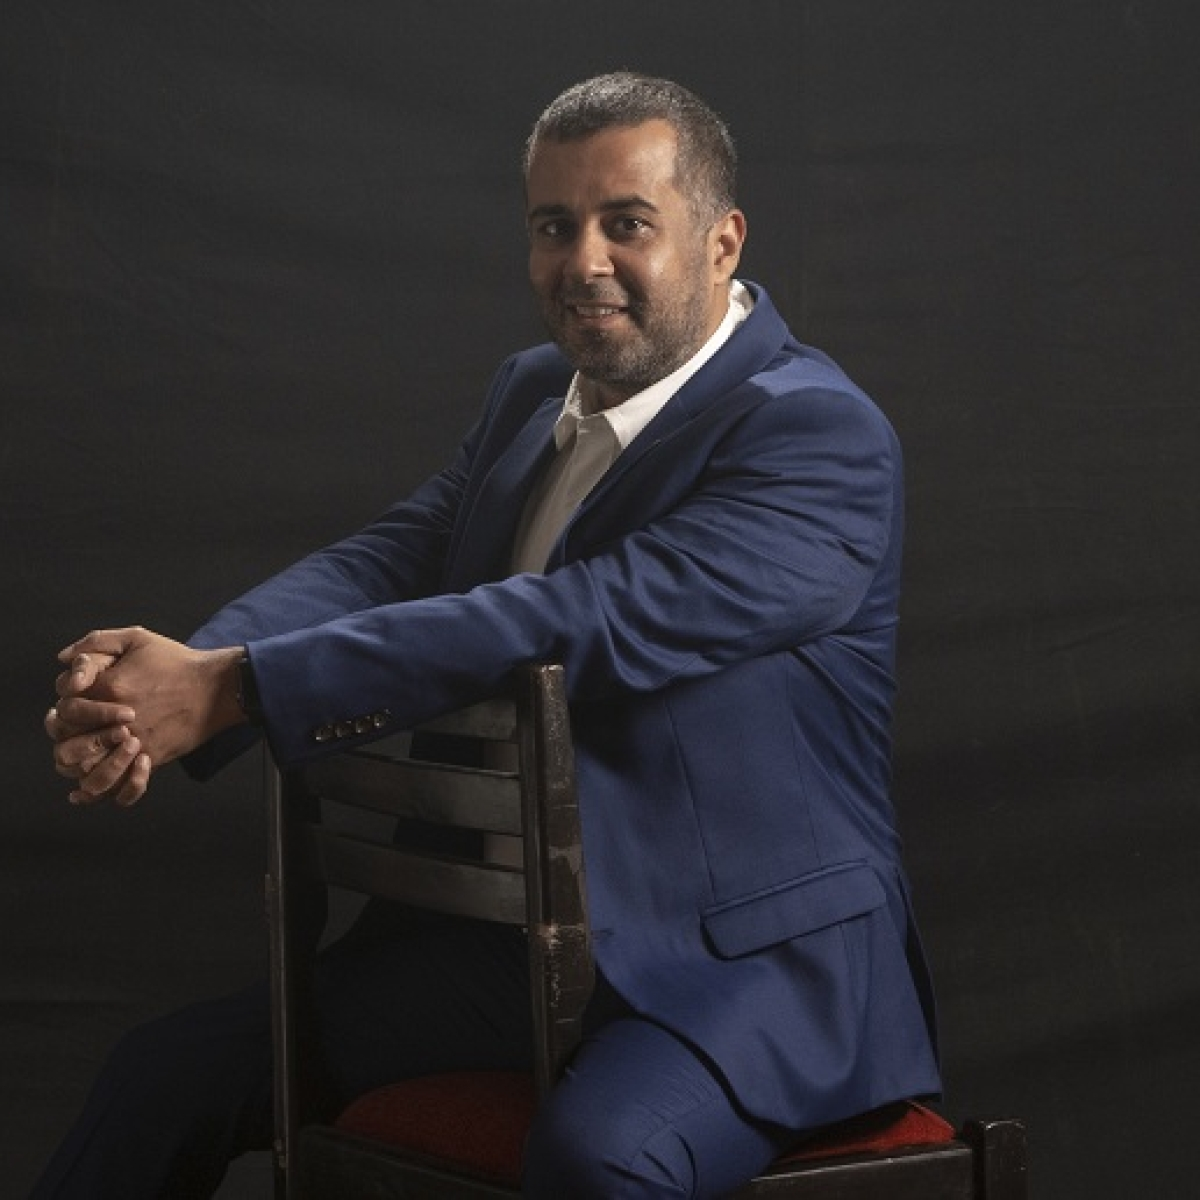 Author Chetan Bhagat opens up about his new book, 'One Arranged Murder', and his mantra of handling trolls